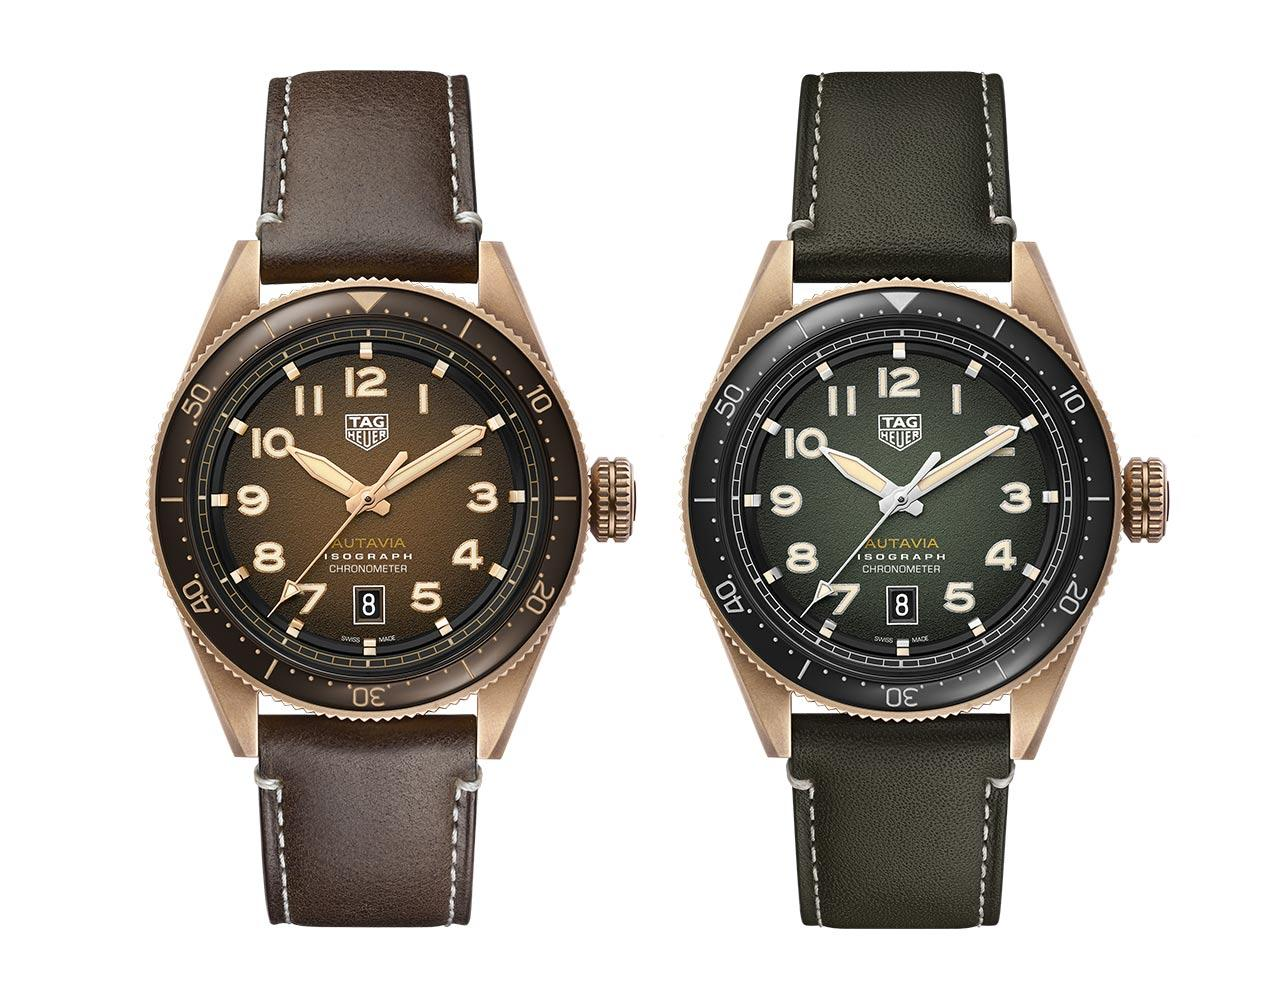 TAG Heuer - Autavia Bronze   Time and Watches   The watch blog